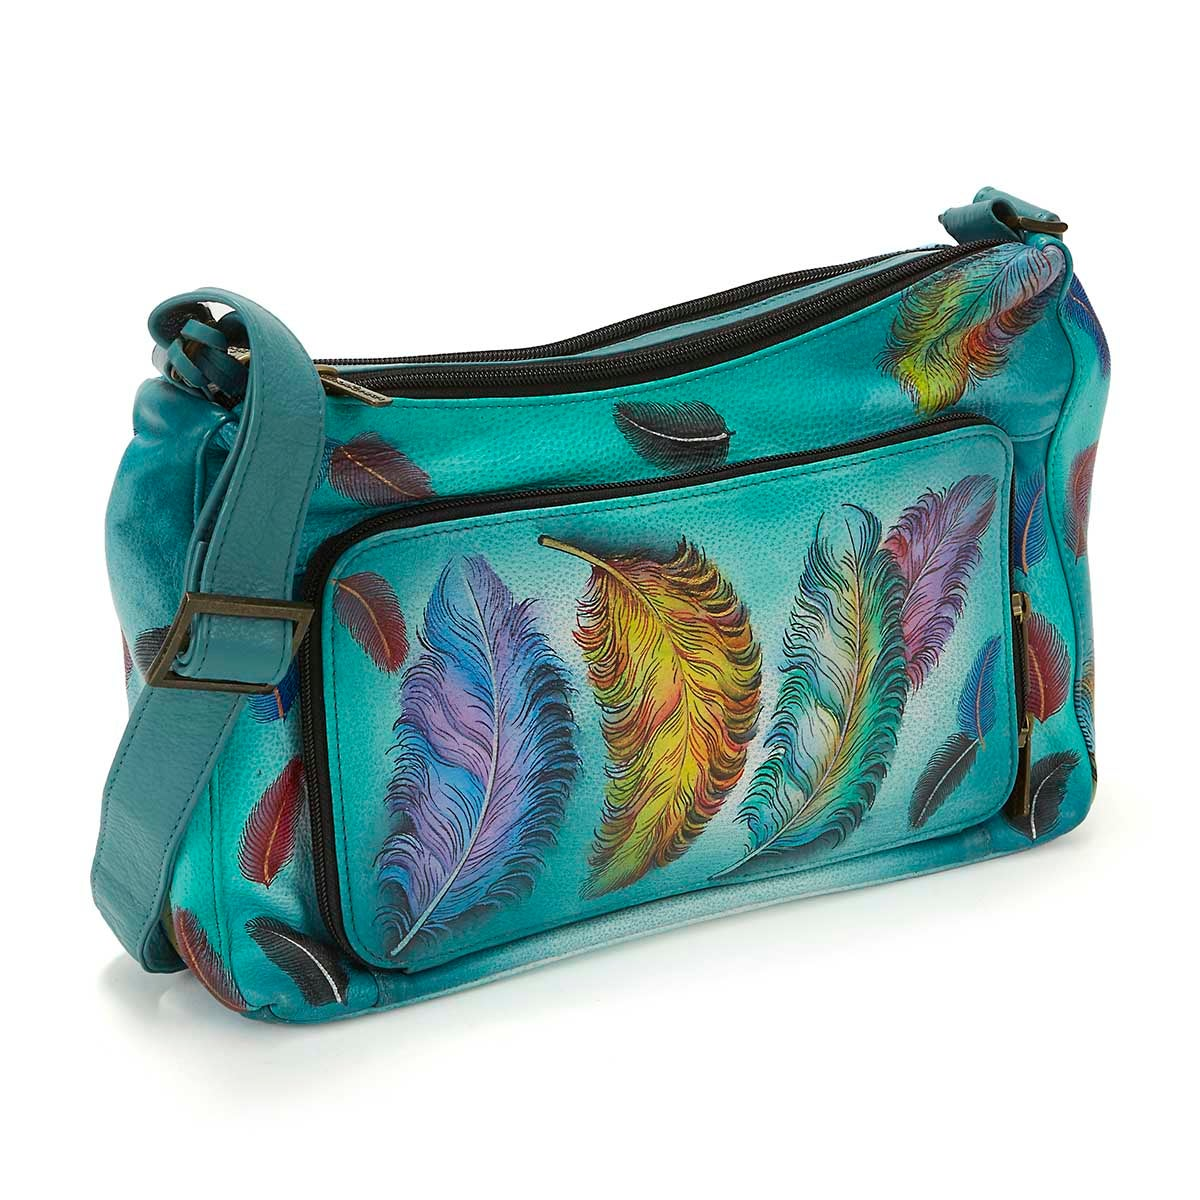 Printed lthr FloatingFeather cross body